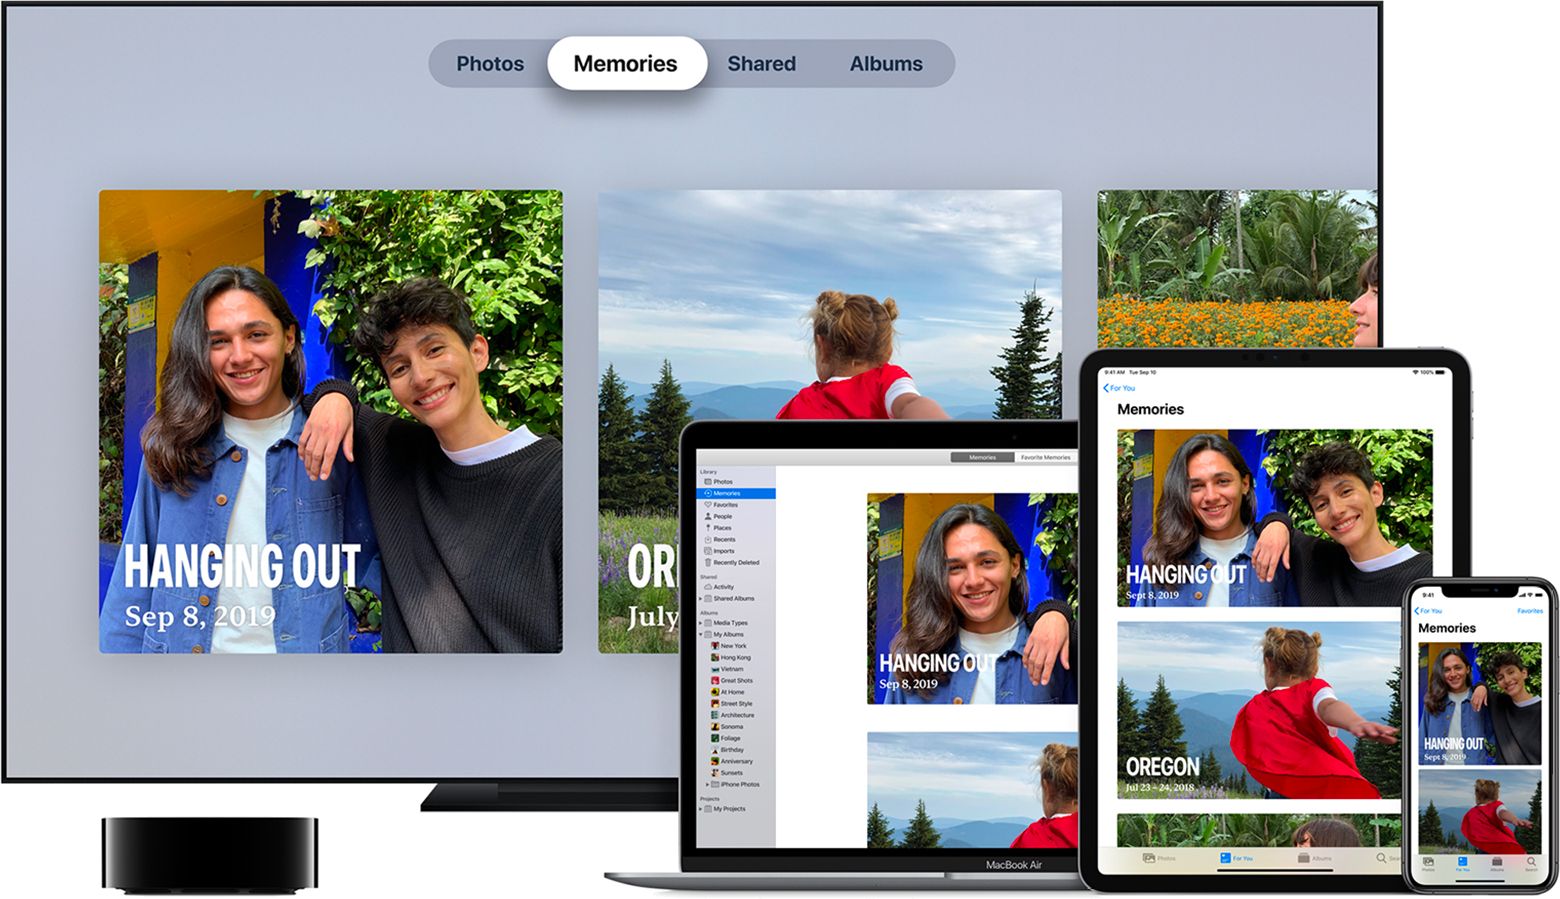 Set Up And Use Icloud Photos Apple Support Using icloud is a simple and effective way to make sure the photos you take with your iphone are backed up somewhere. set up and use icloud photos apple